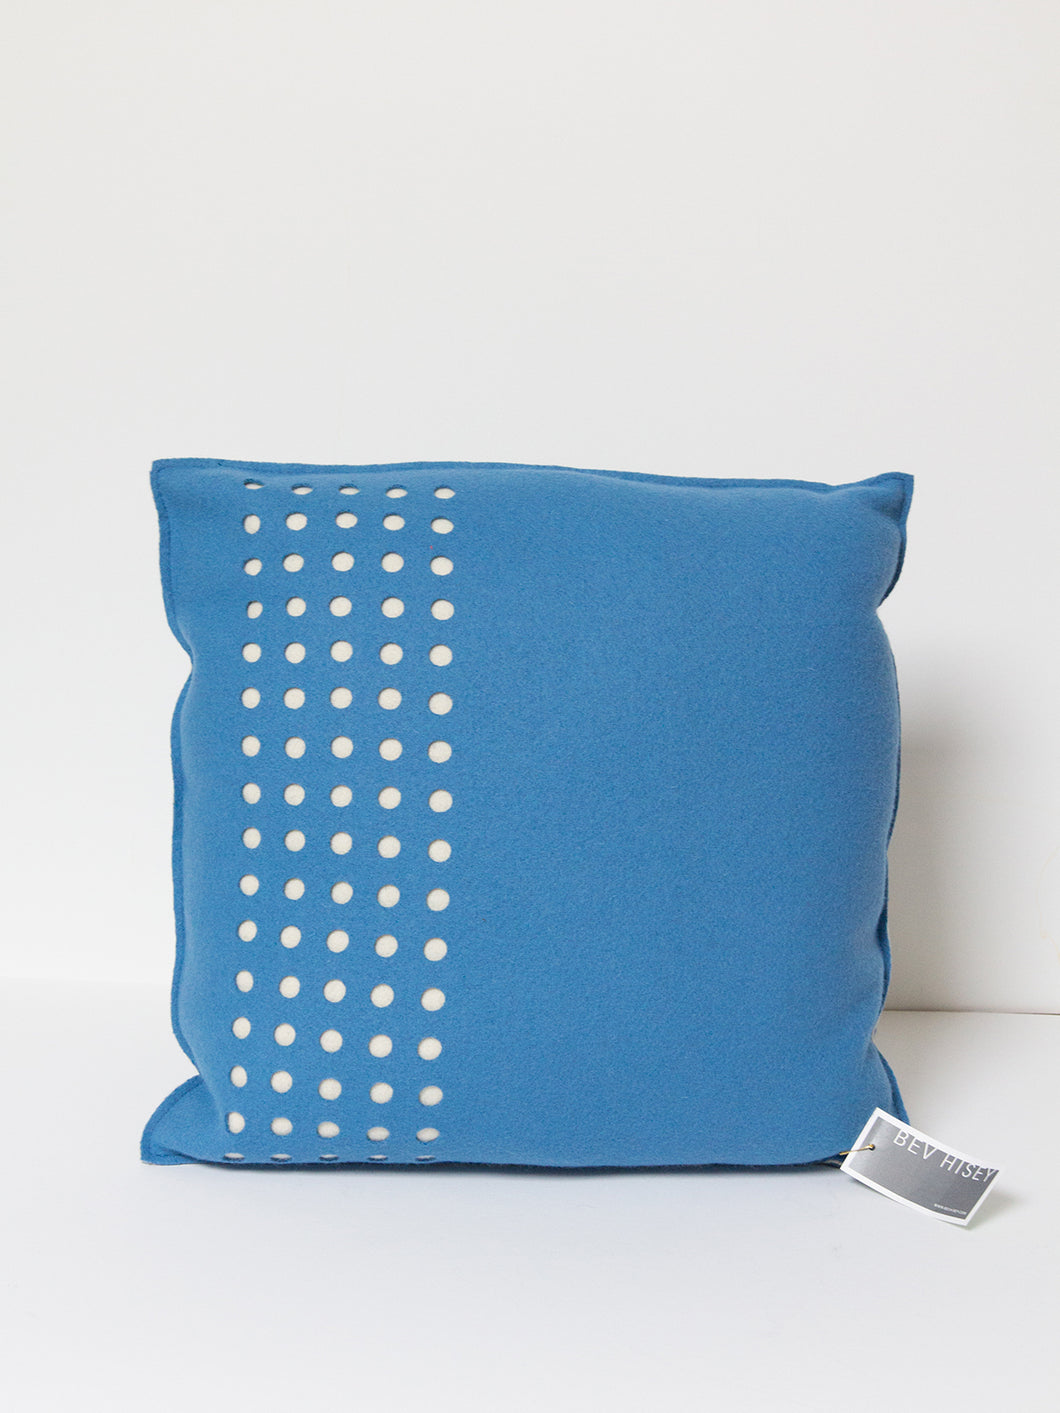 Die-cut Cushions